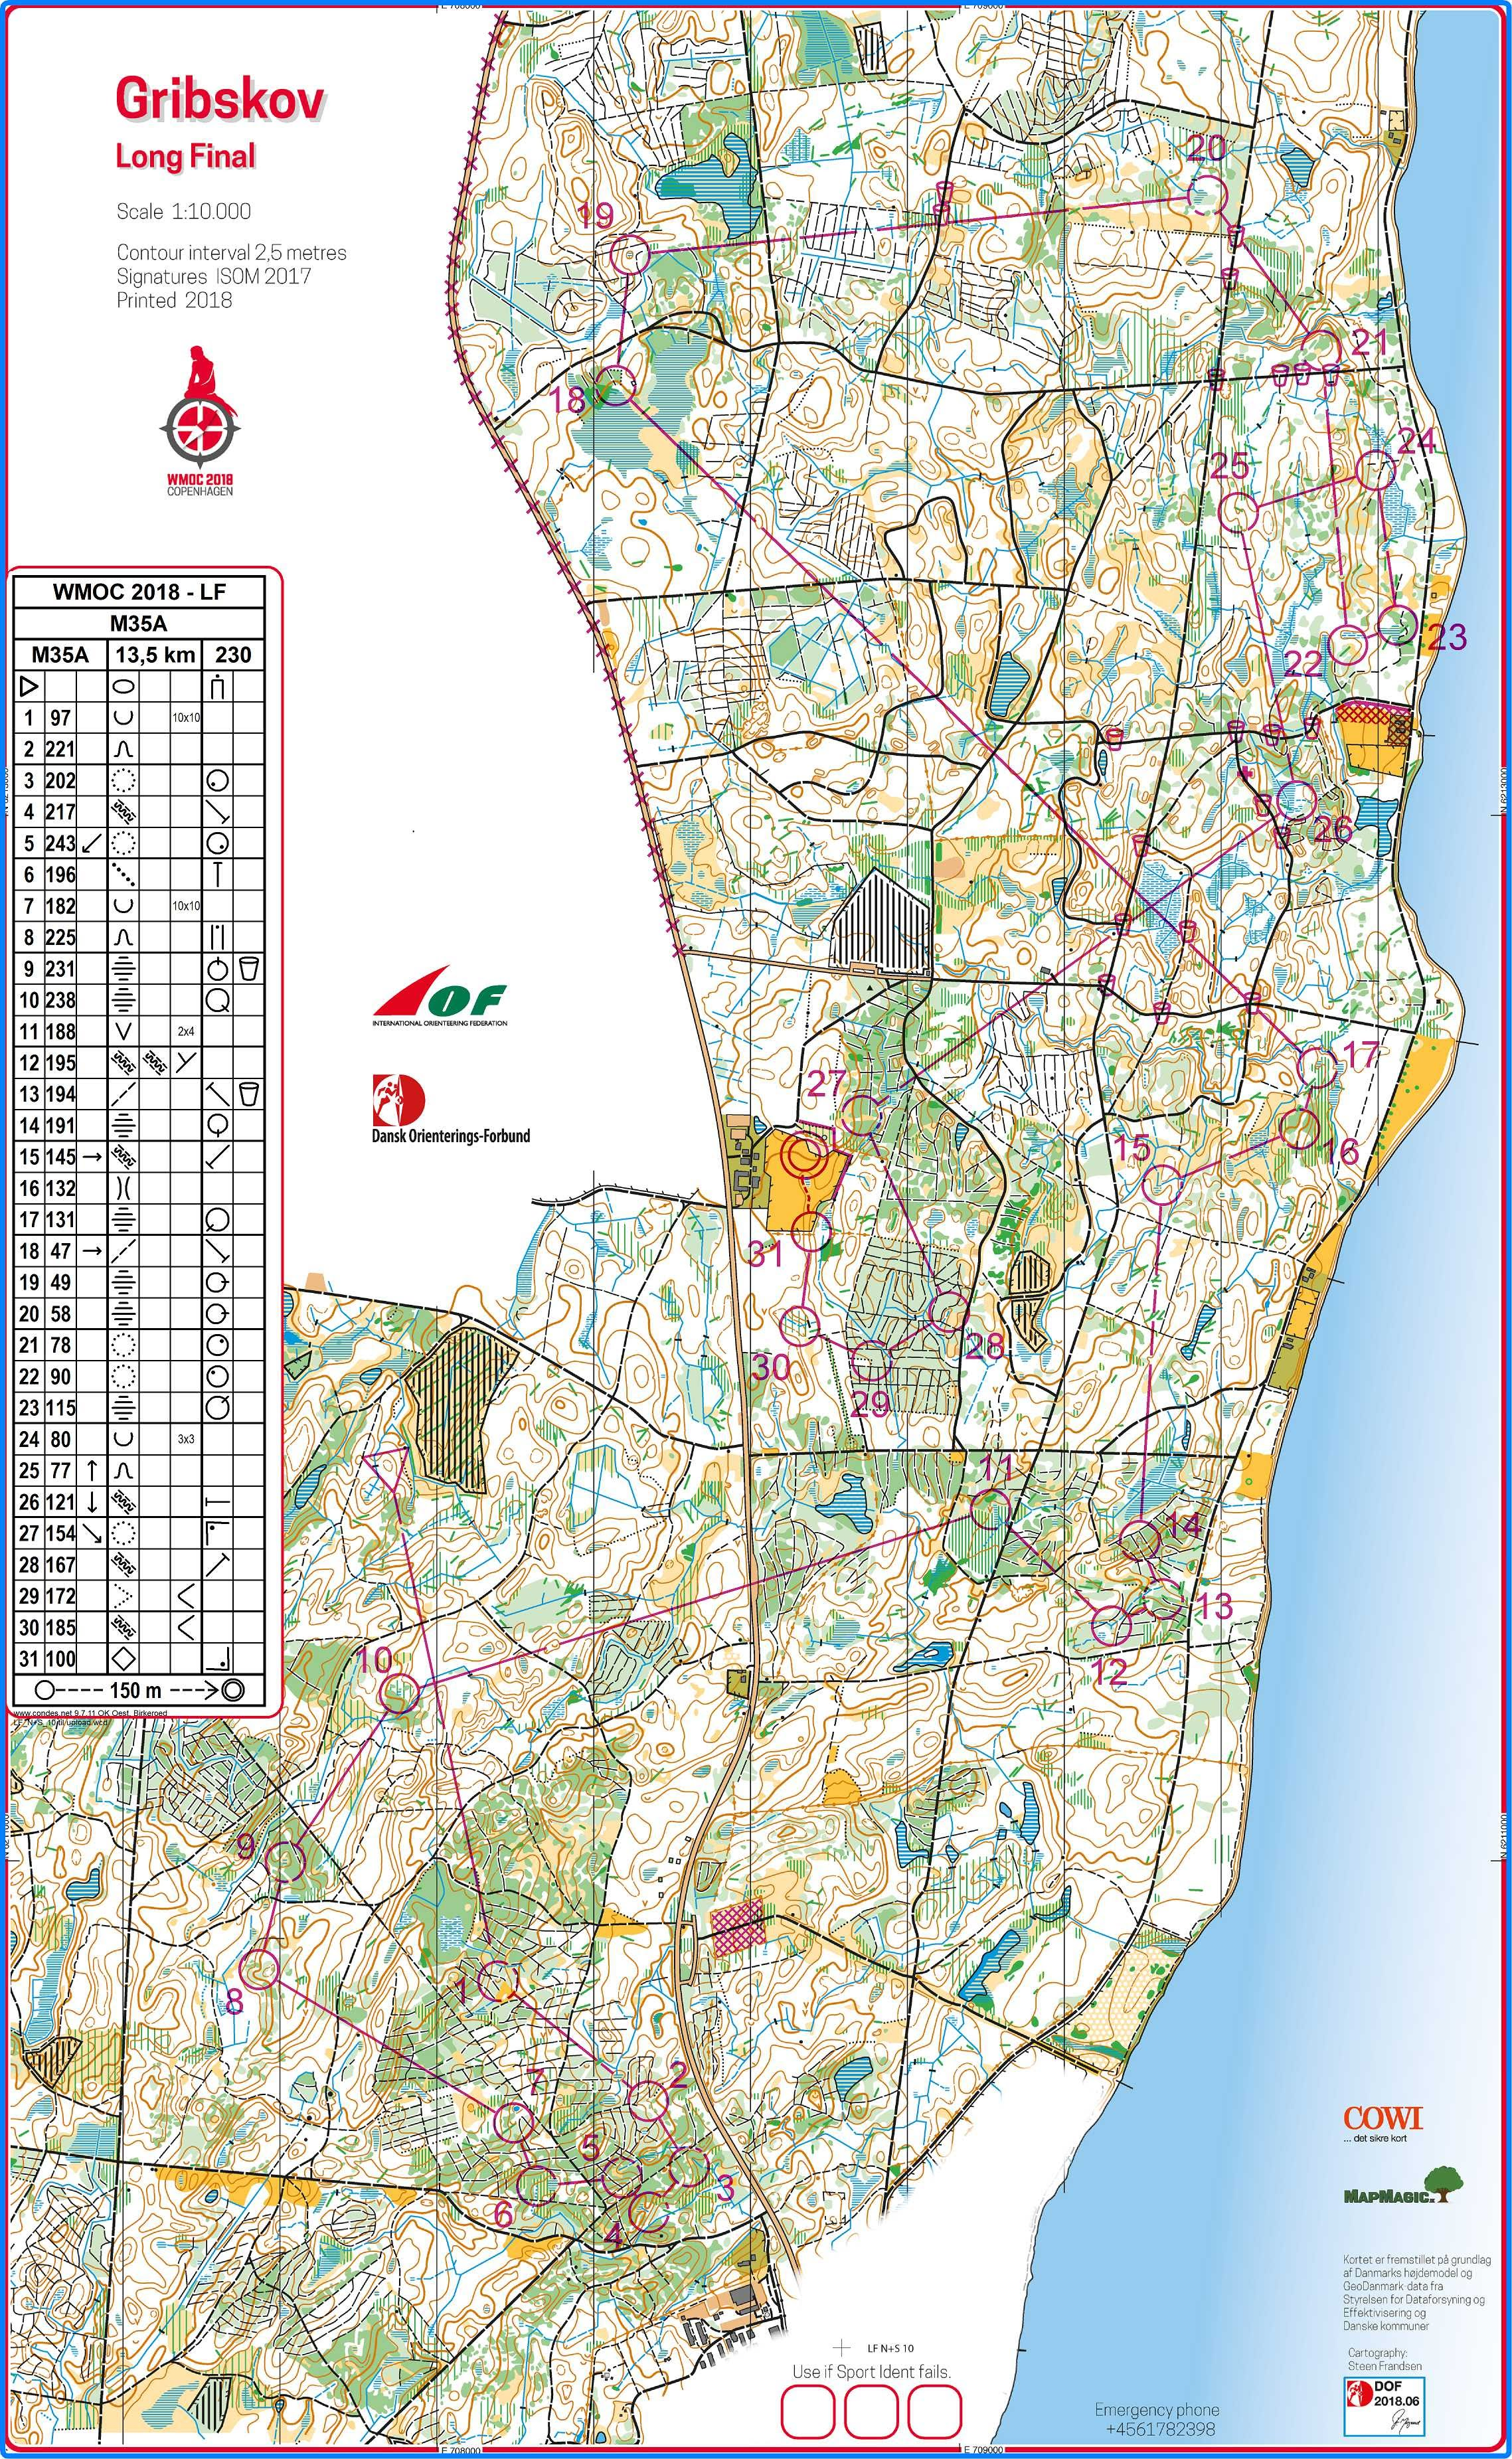 Wmoc 2018 Long M35 July 13th 2018 Orienteering Map From Suggested